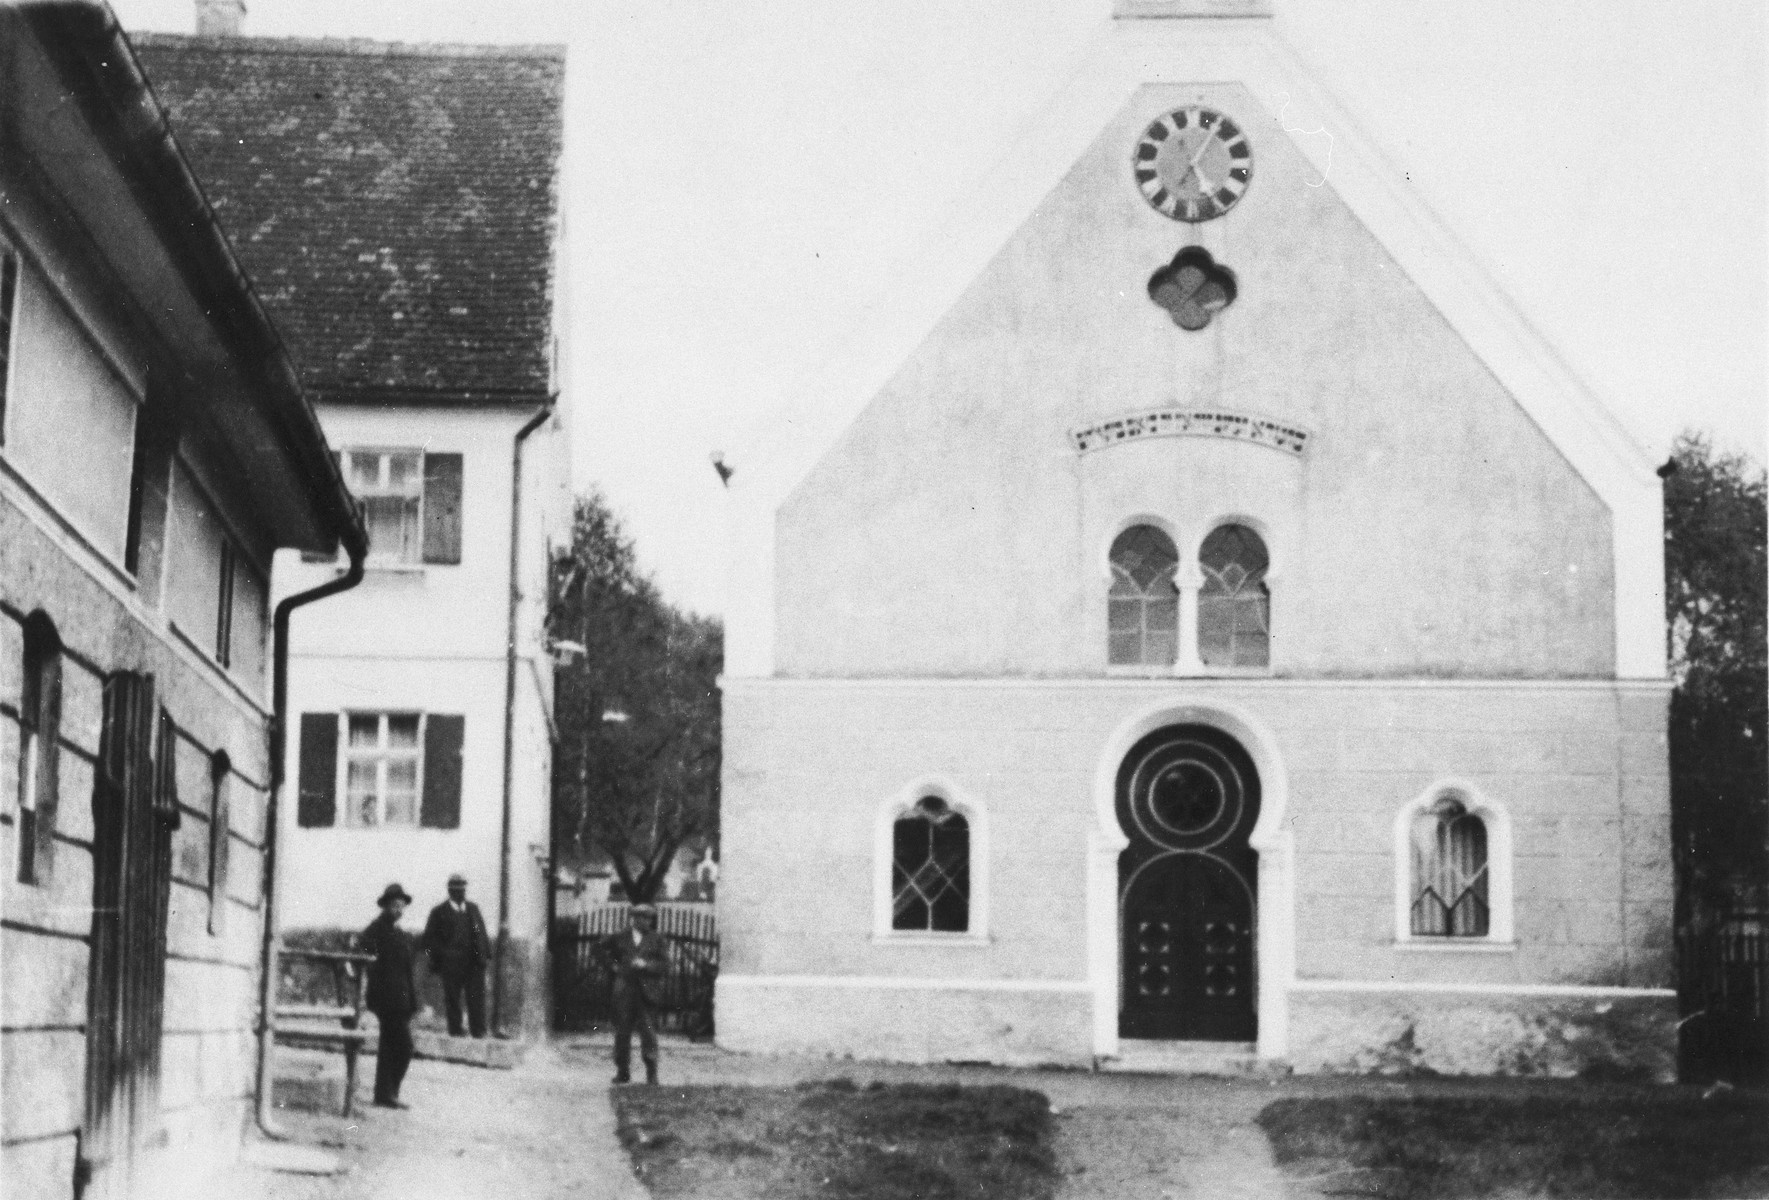 Exterior view of the Buttenwiesen synagogue.  The synagogue in Buttenwiesen was not destroyed during Kristallnacht.  After the war it was converted into a school and later used for other purposes.